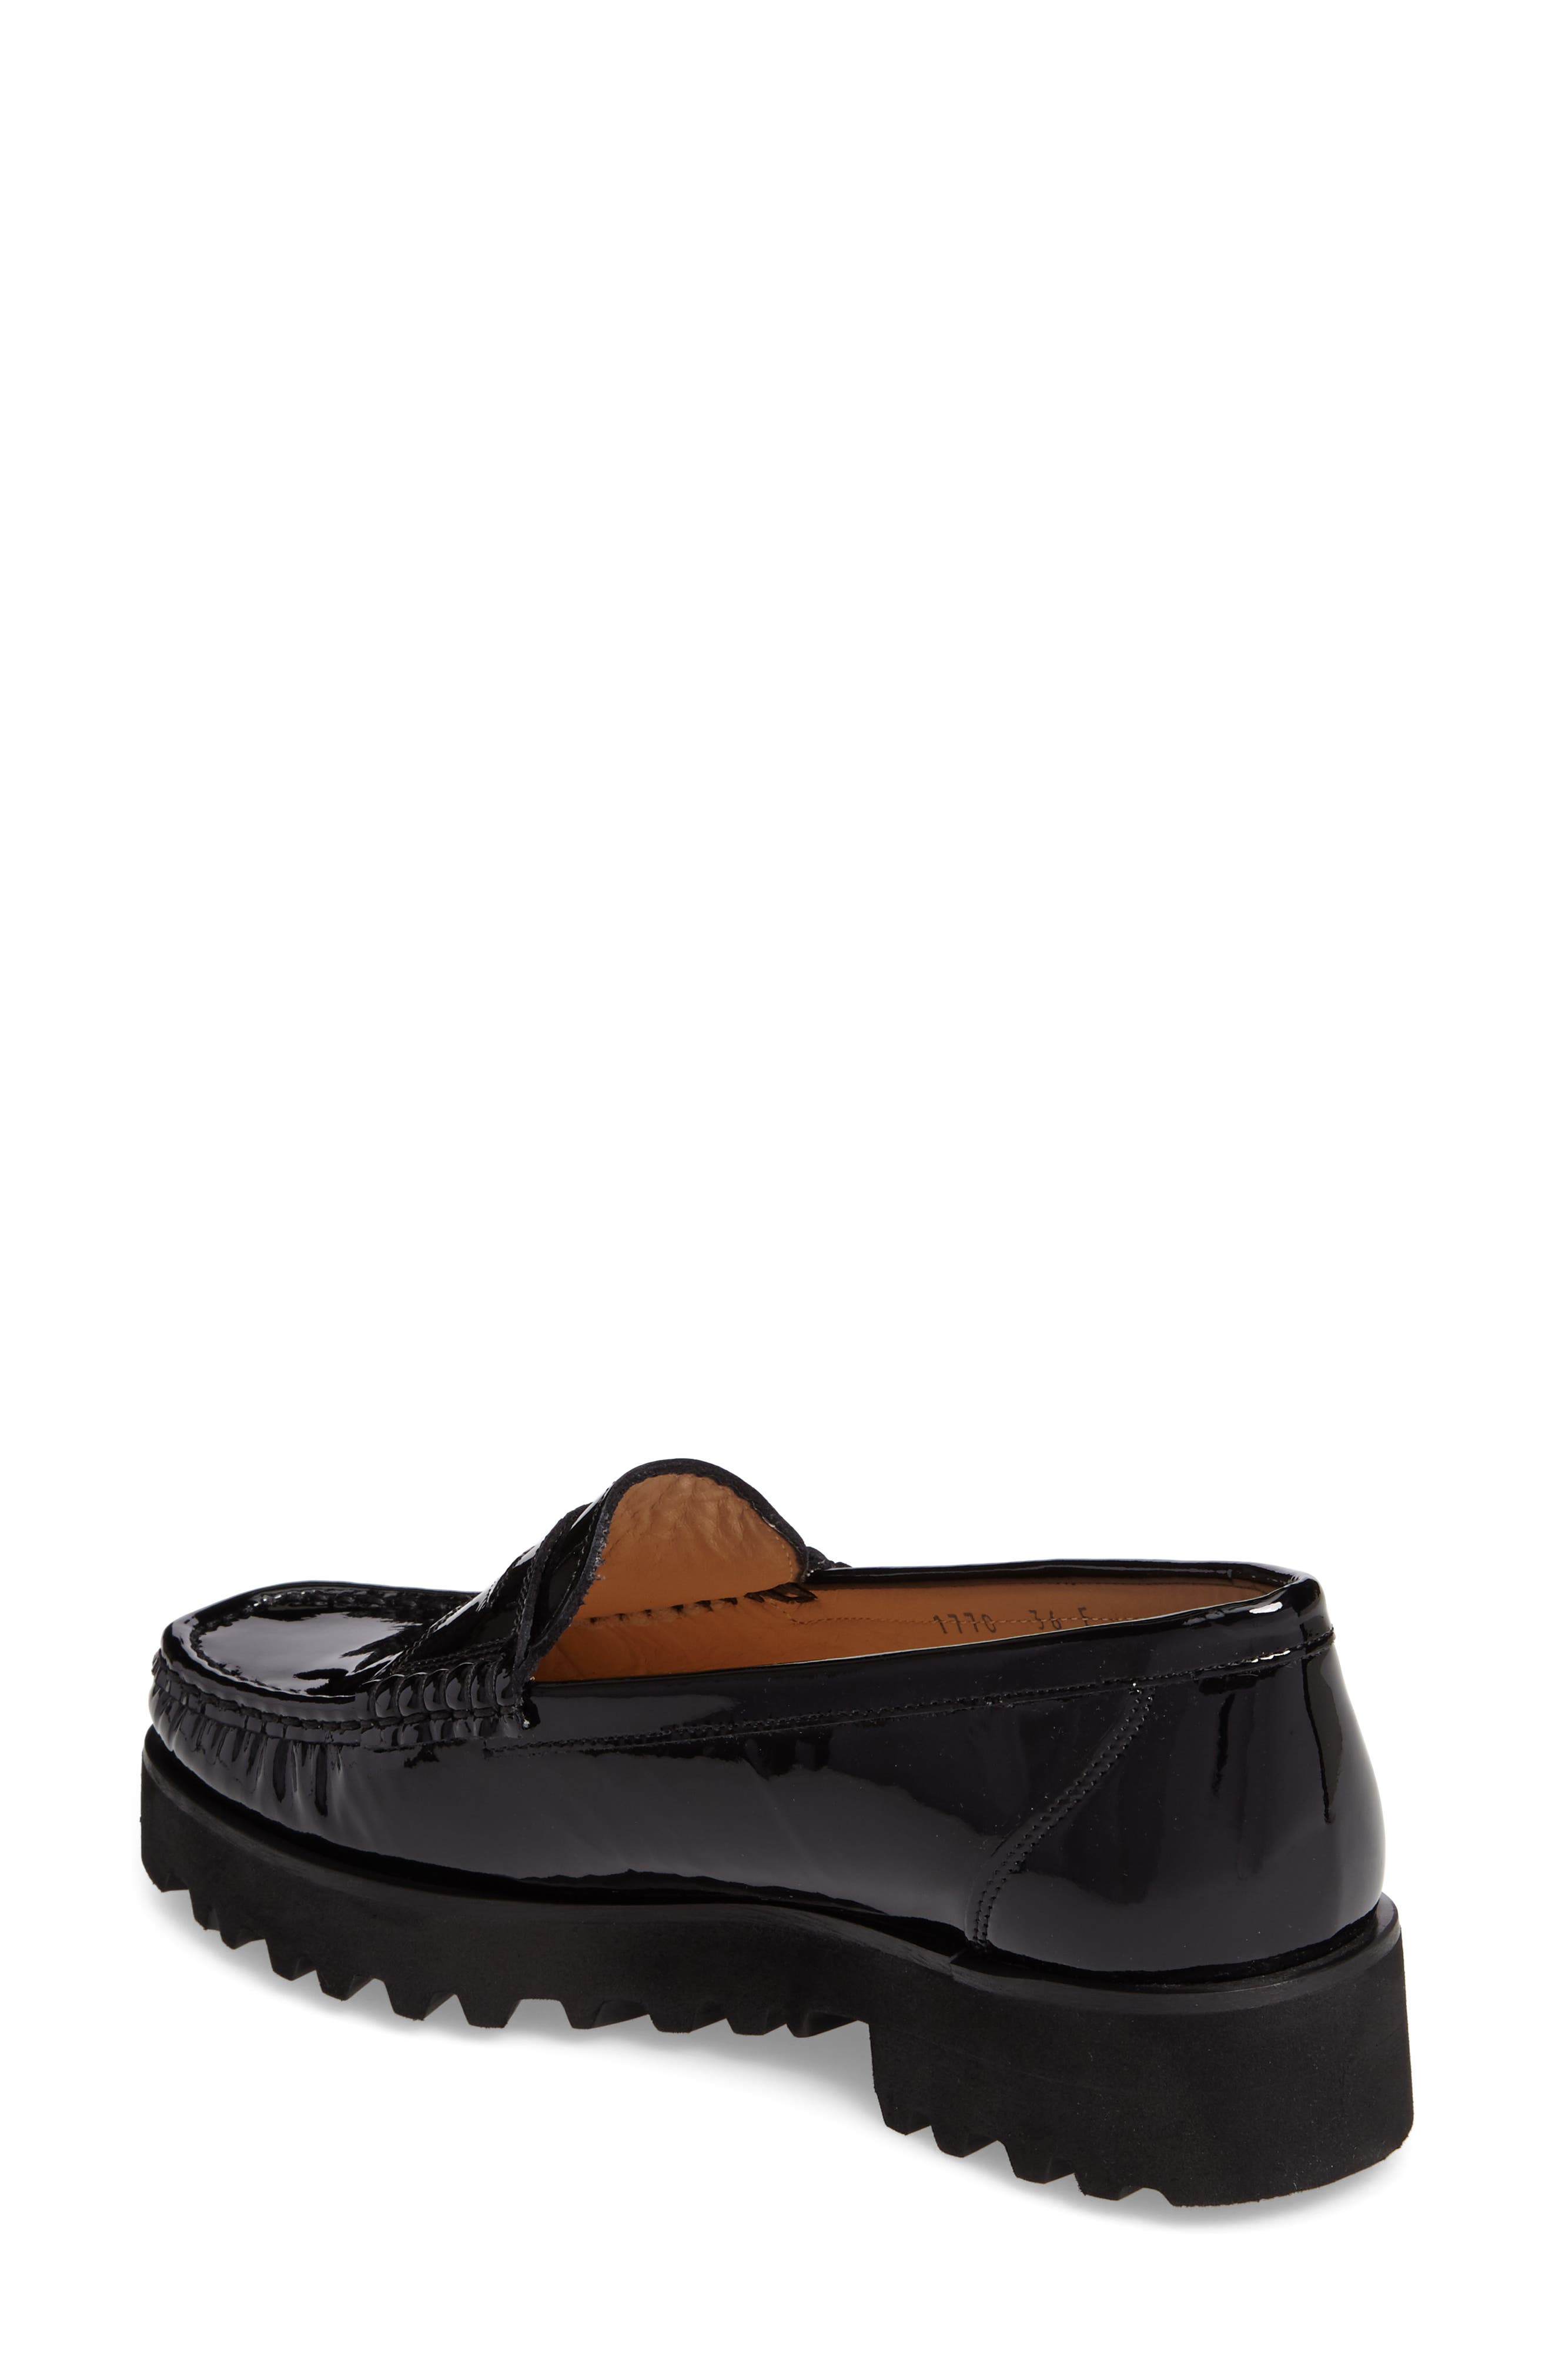 Rita Platform Penny Loafer,                             Alternate thumbnail 2, color,                             Onyx Patent